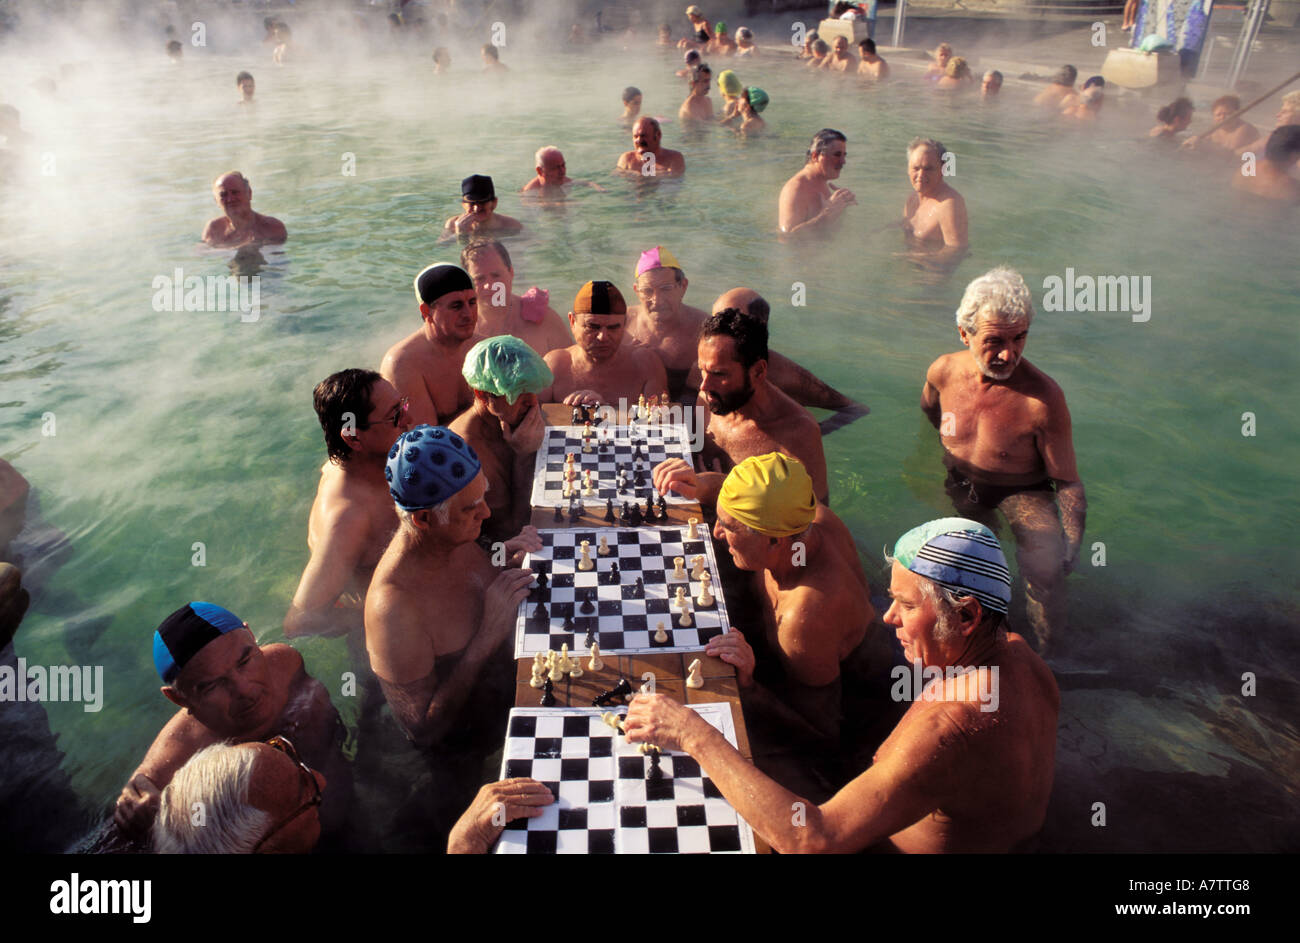 Hungary, Budapest, chess players in the famous Szechenyi baths at Pest - Stock Image